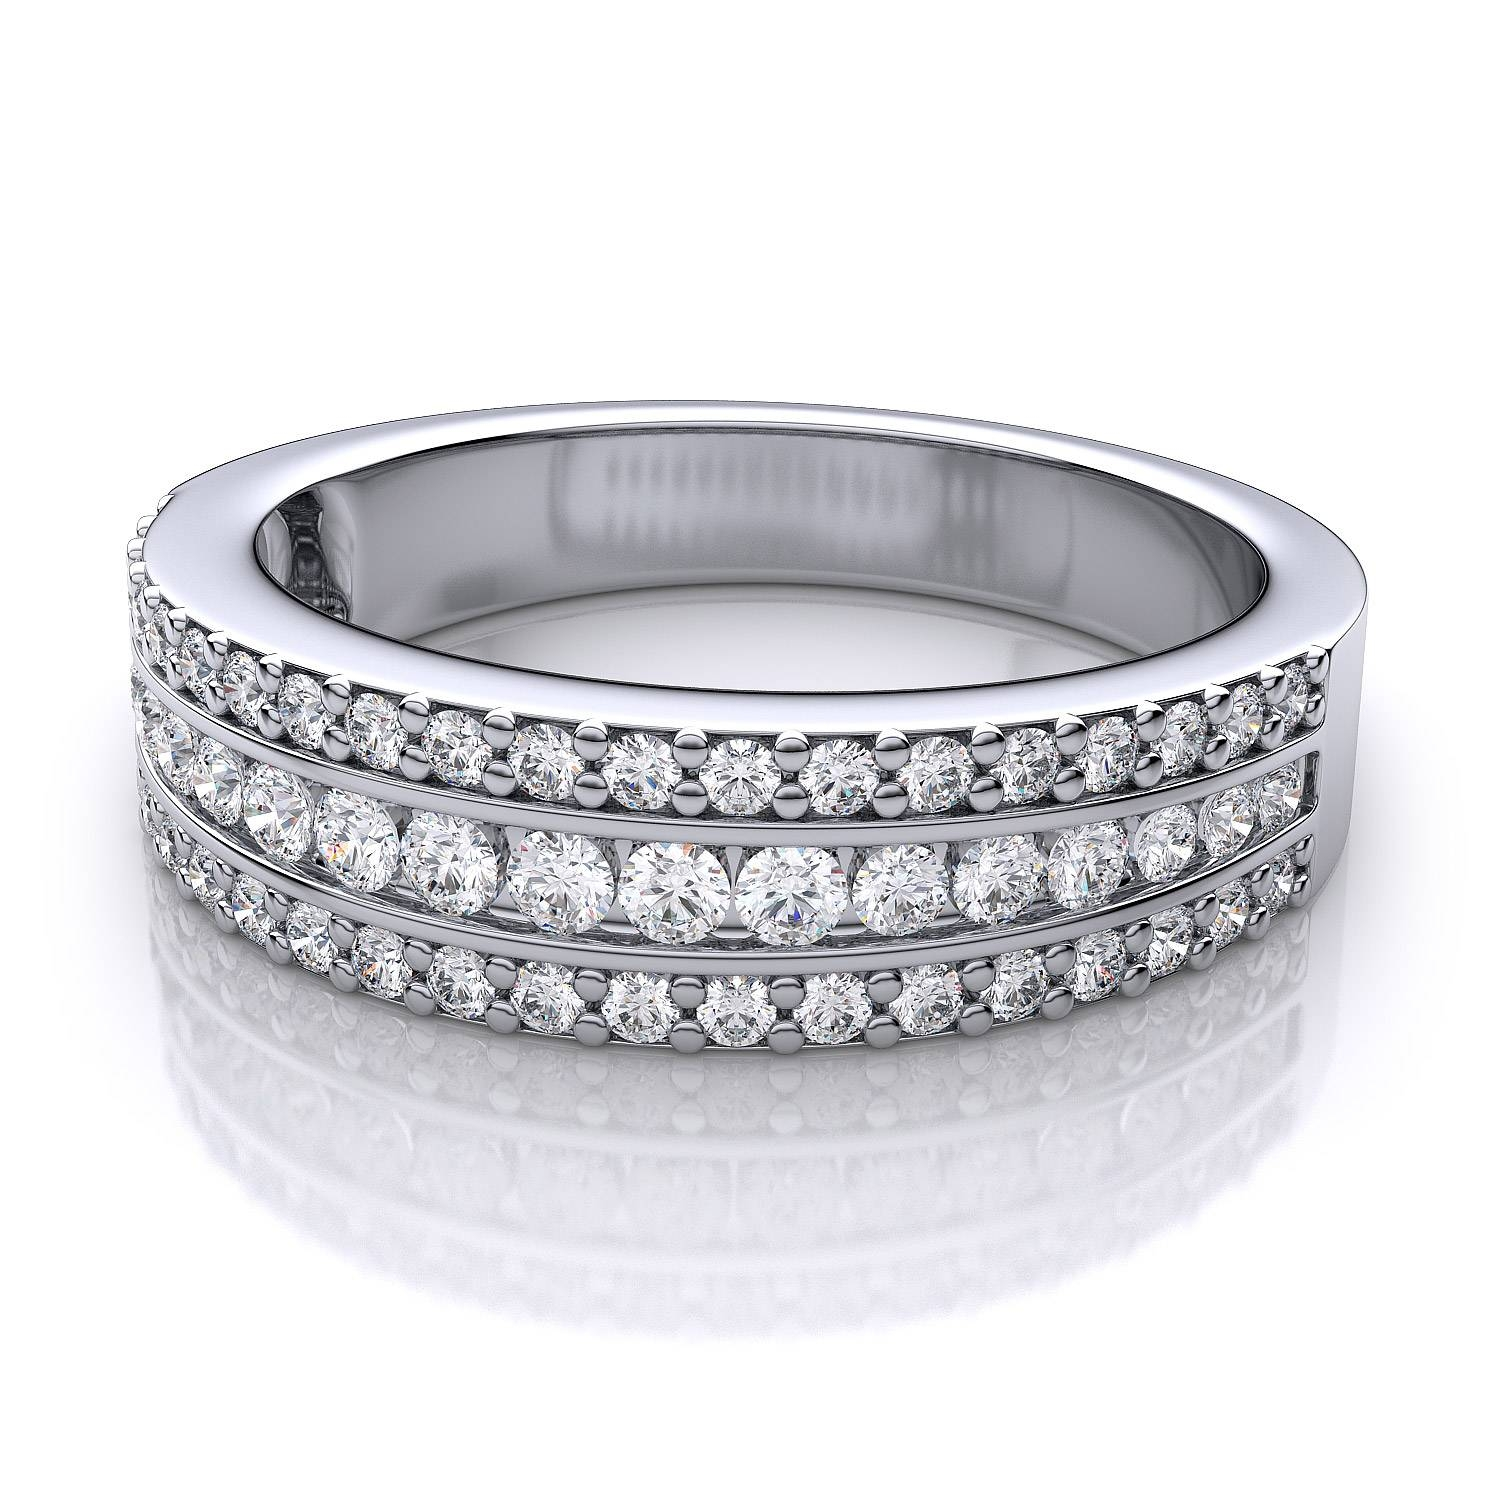 2.6Mm Three Row Pave Round Diamond Wedding Or Anniversary Ring In With Regard To Newest Pave White Gold Diamond Wedding Bands (Gallery 11 of 15)